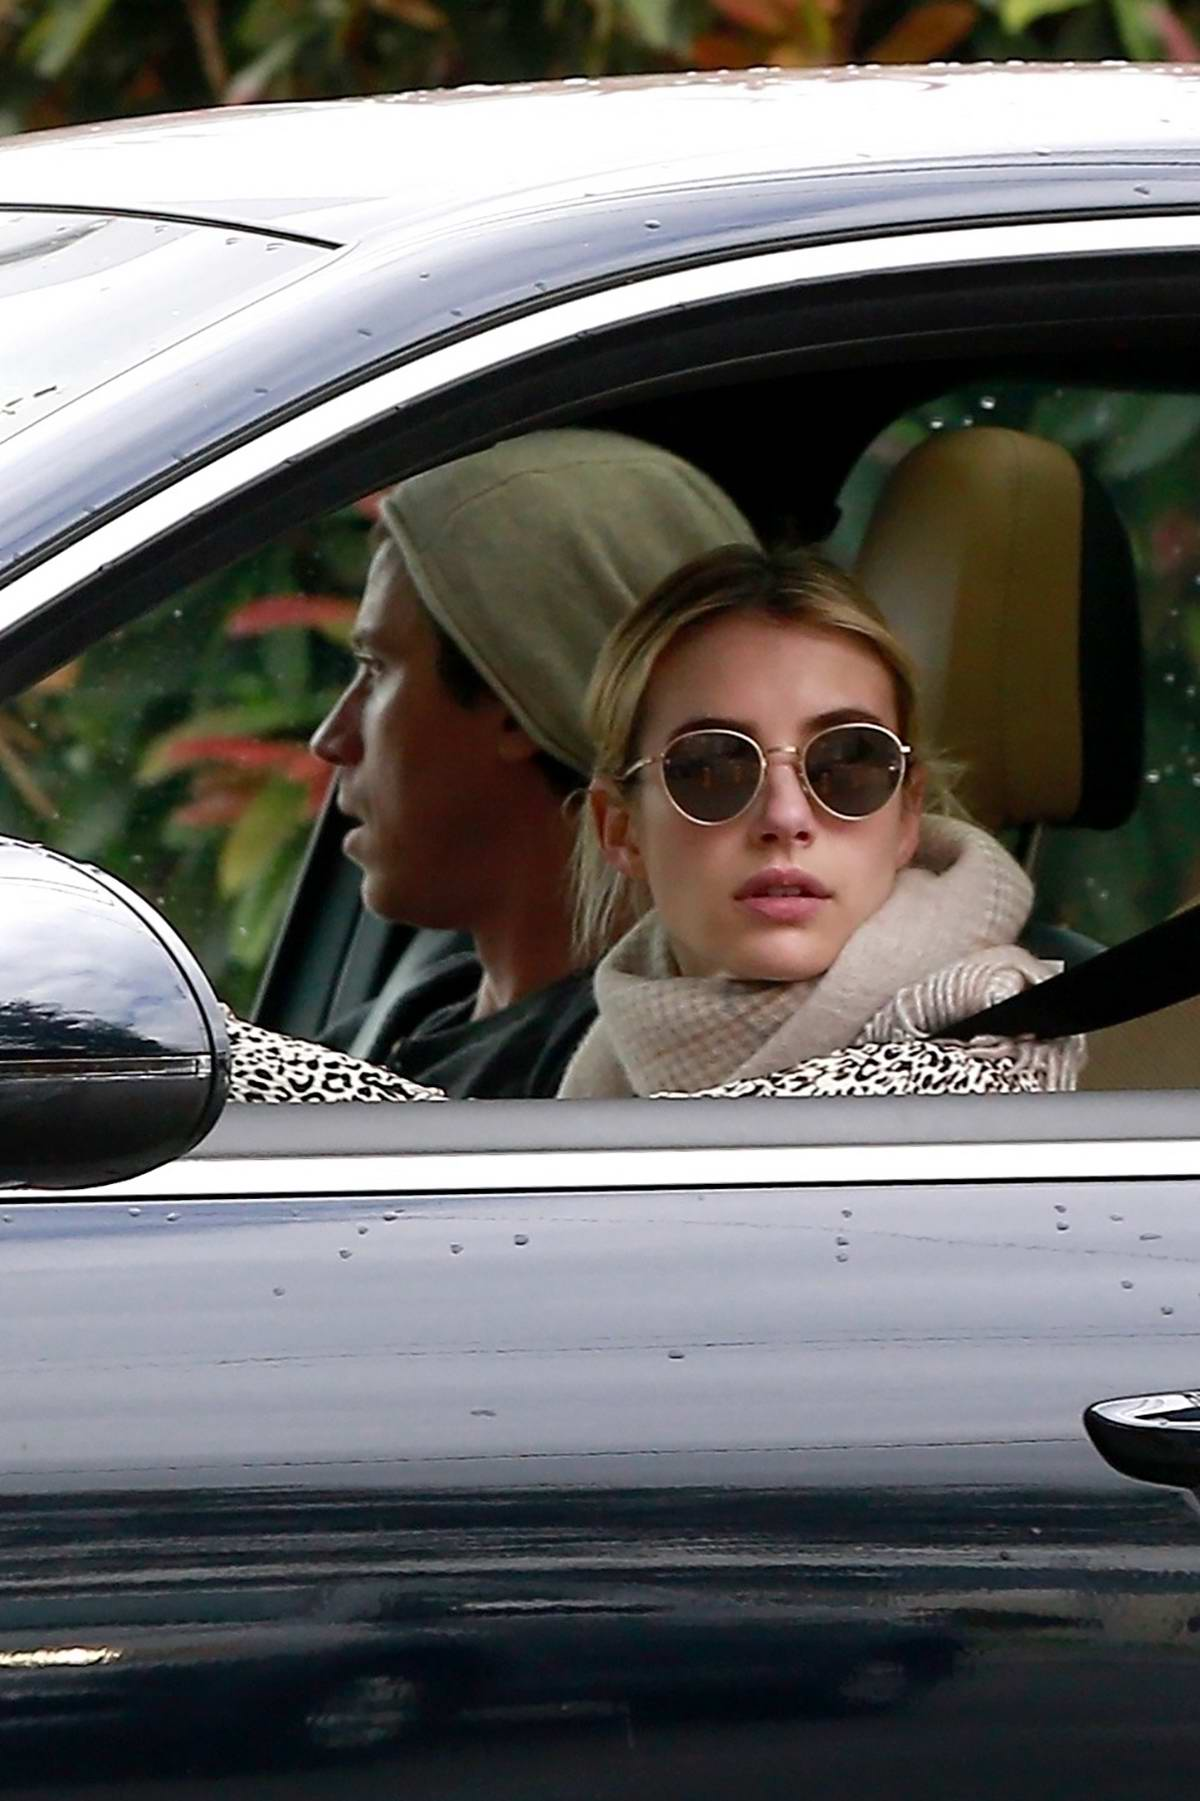 Emma Roberts and Garret Hedlund spotted at a Starbucks drive-thru in Los Angeles